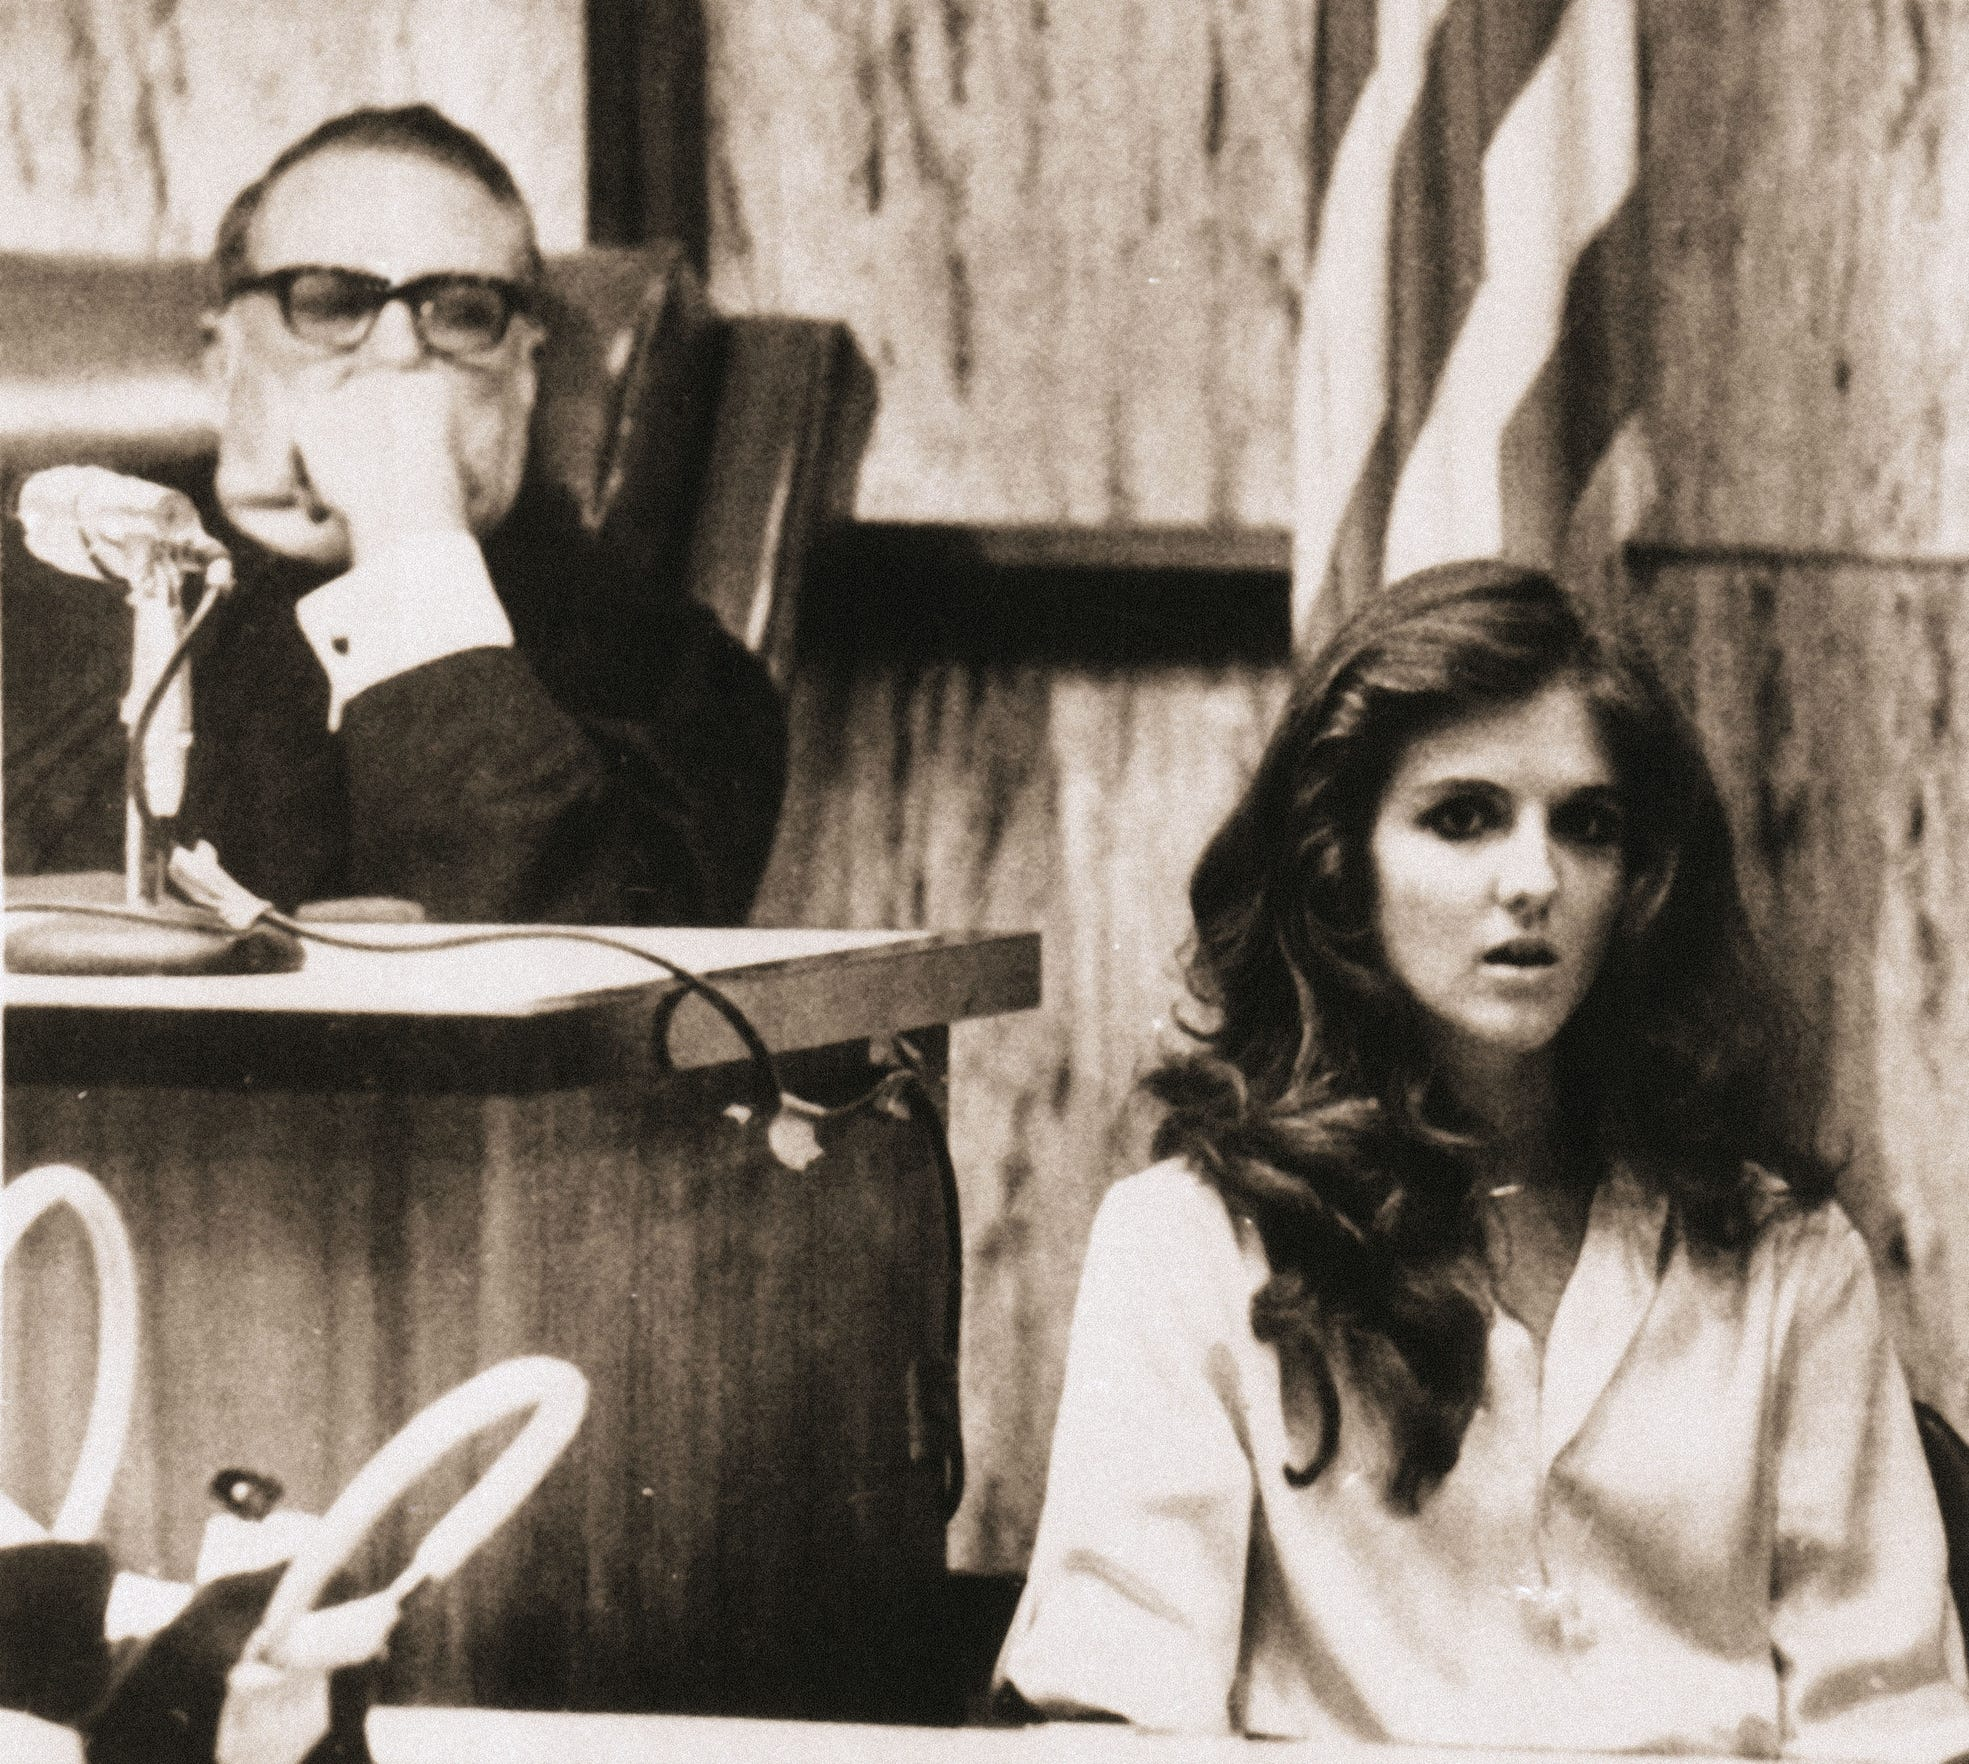 Carol DaRonch testifies at a pre-sentencing hearing for convicted murder Ted Bundy as Judge Edward Cowart listens, July 28, 1979, in Miami.  Bundy was convicted of kidnapping DaRonch from a Salt Lake City suburb in 1974.